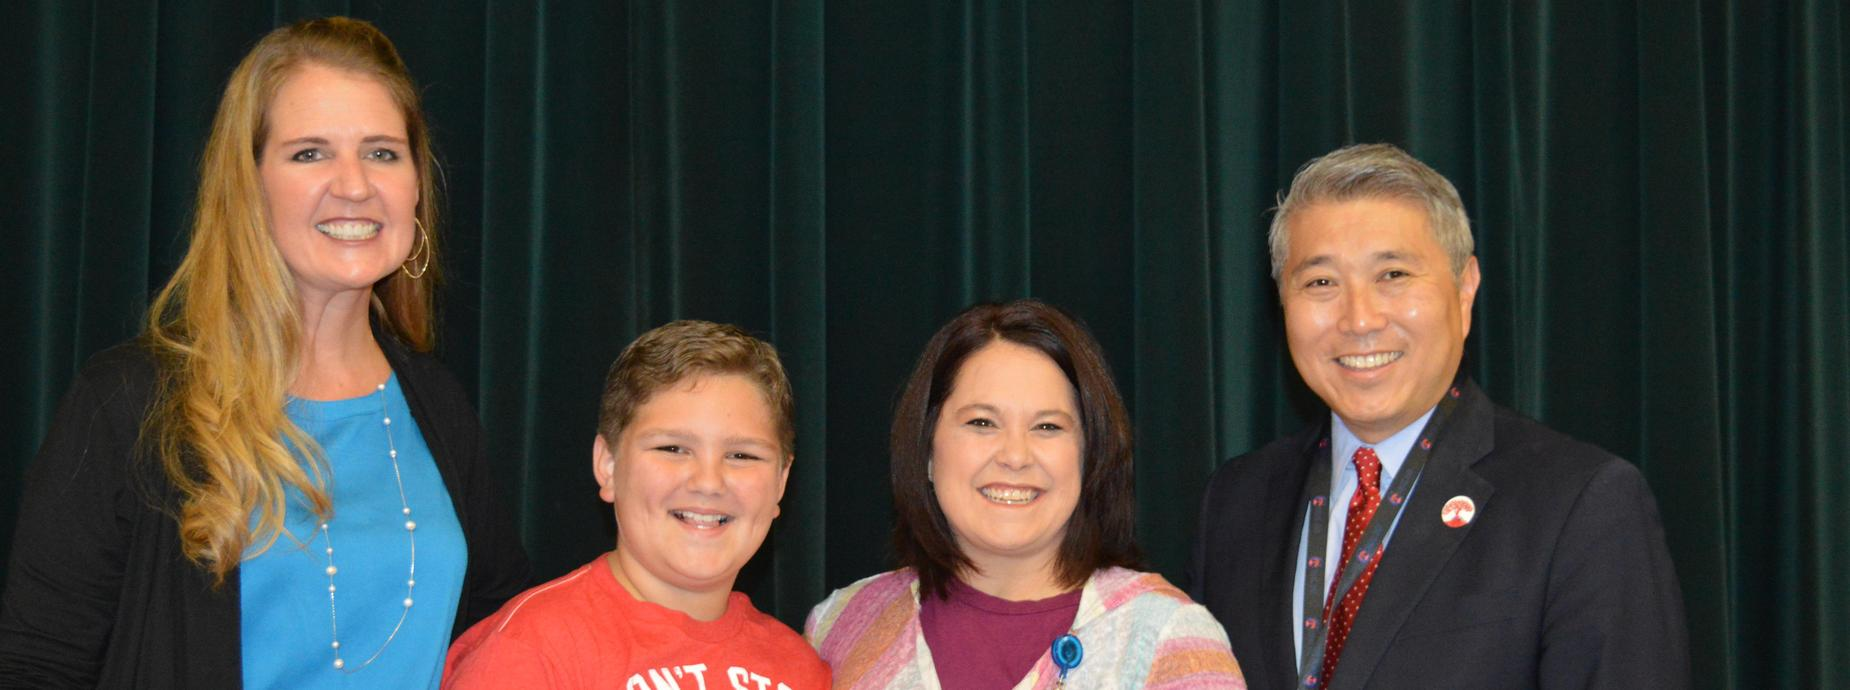 Mrs. Durst, Rishanne and Rylan Frech and Mr. Kim